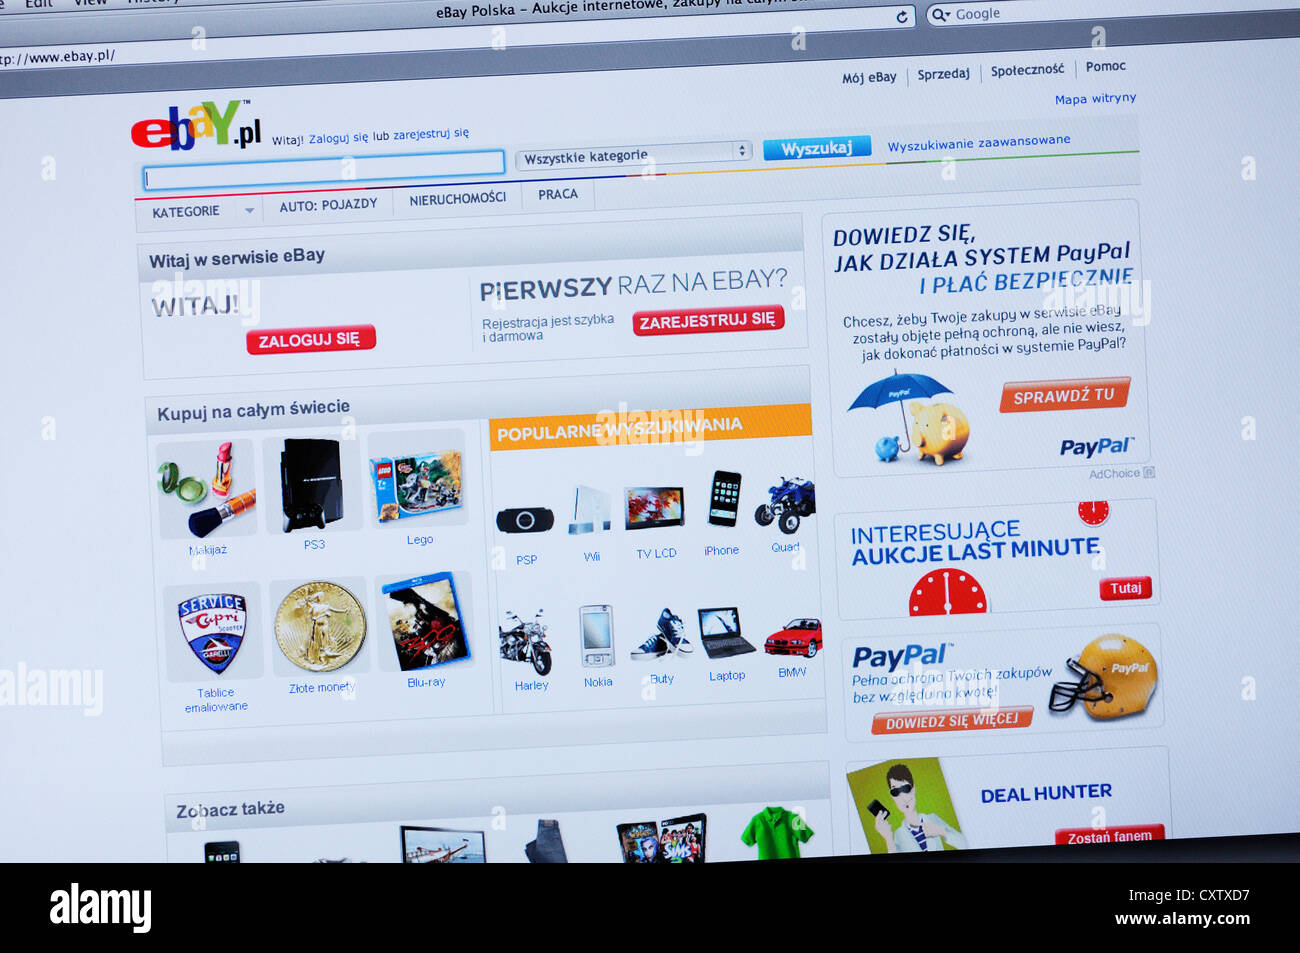 Ebay Poland Website Online Shopping Stock Photo 50949395 Alamy